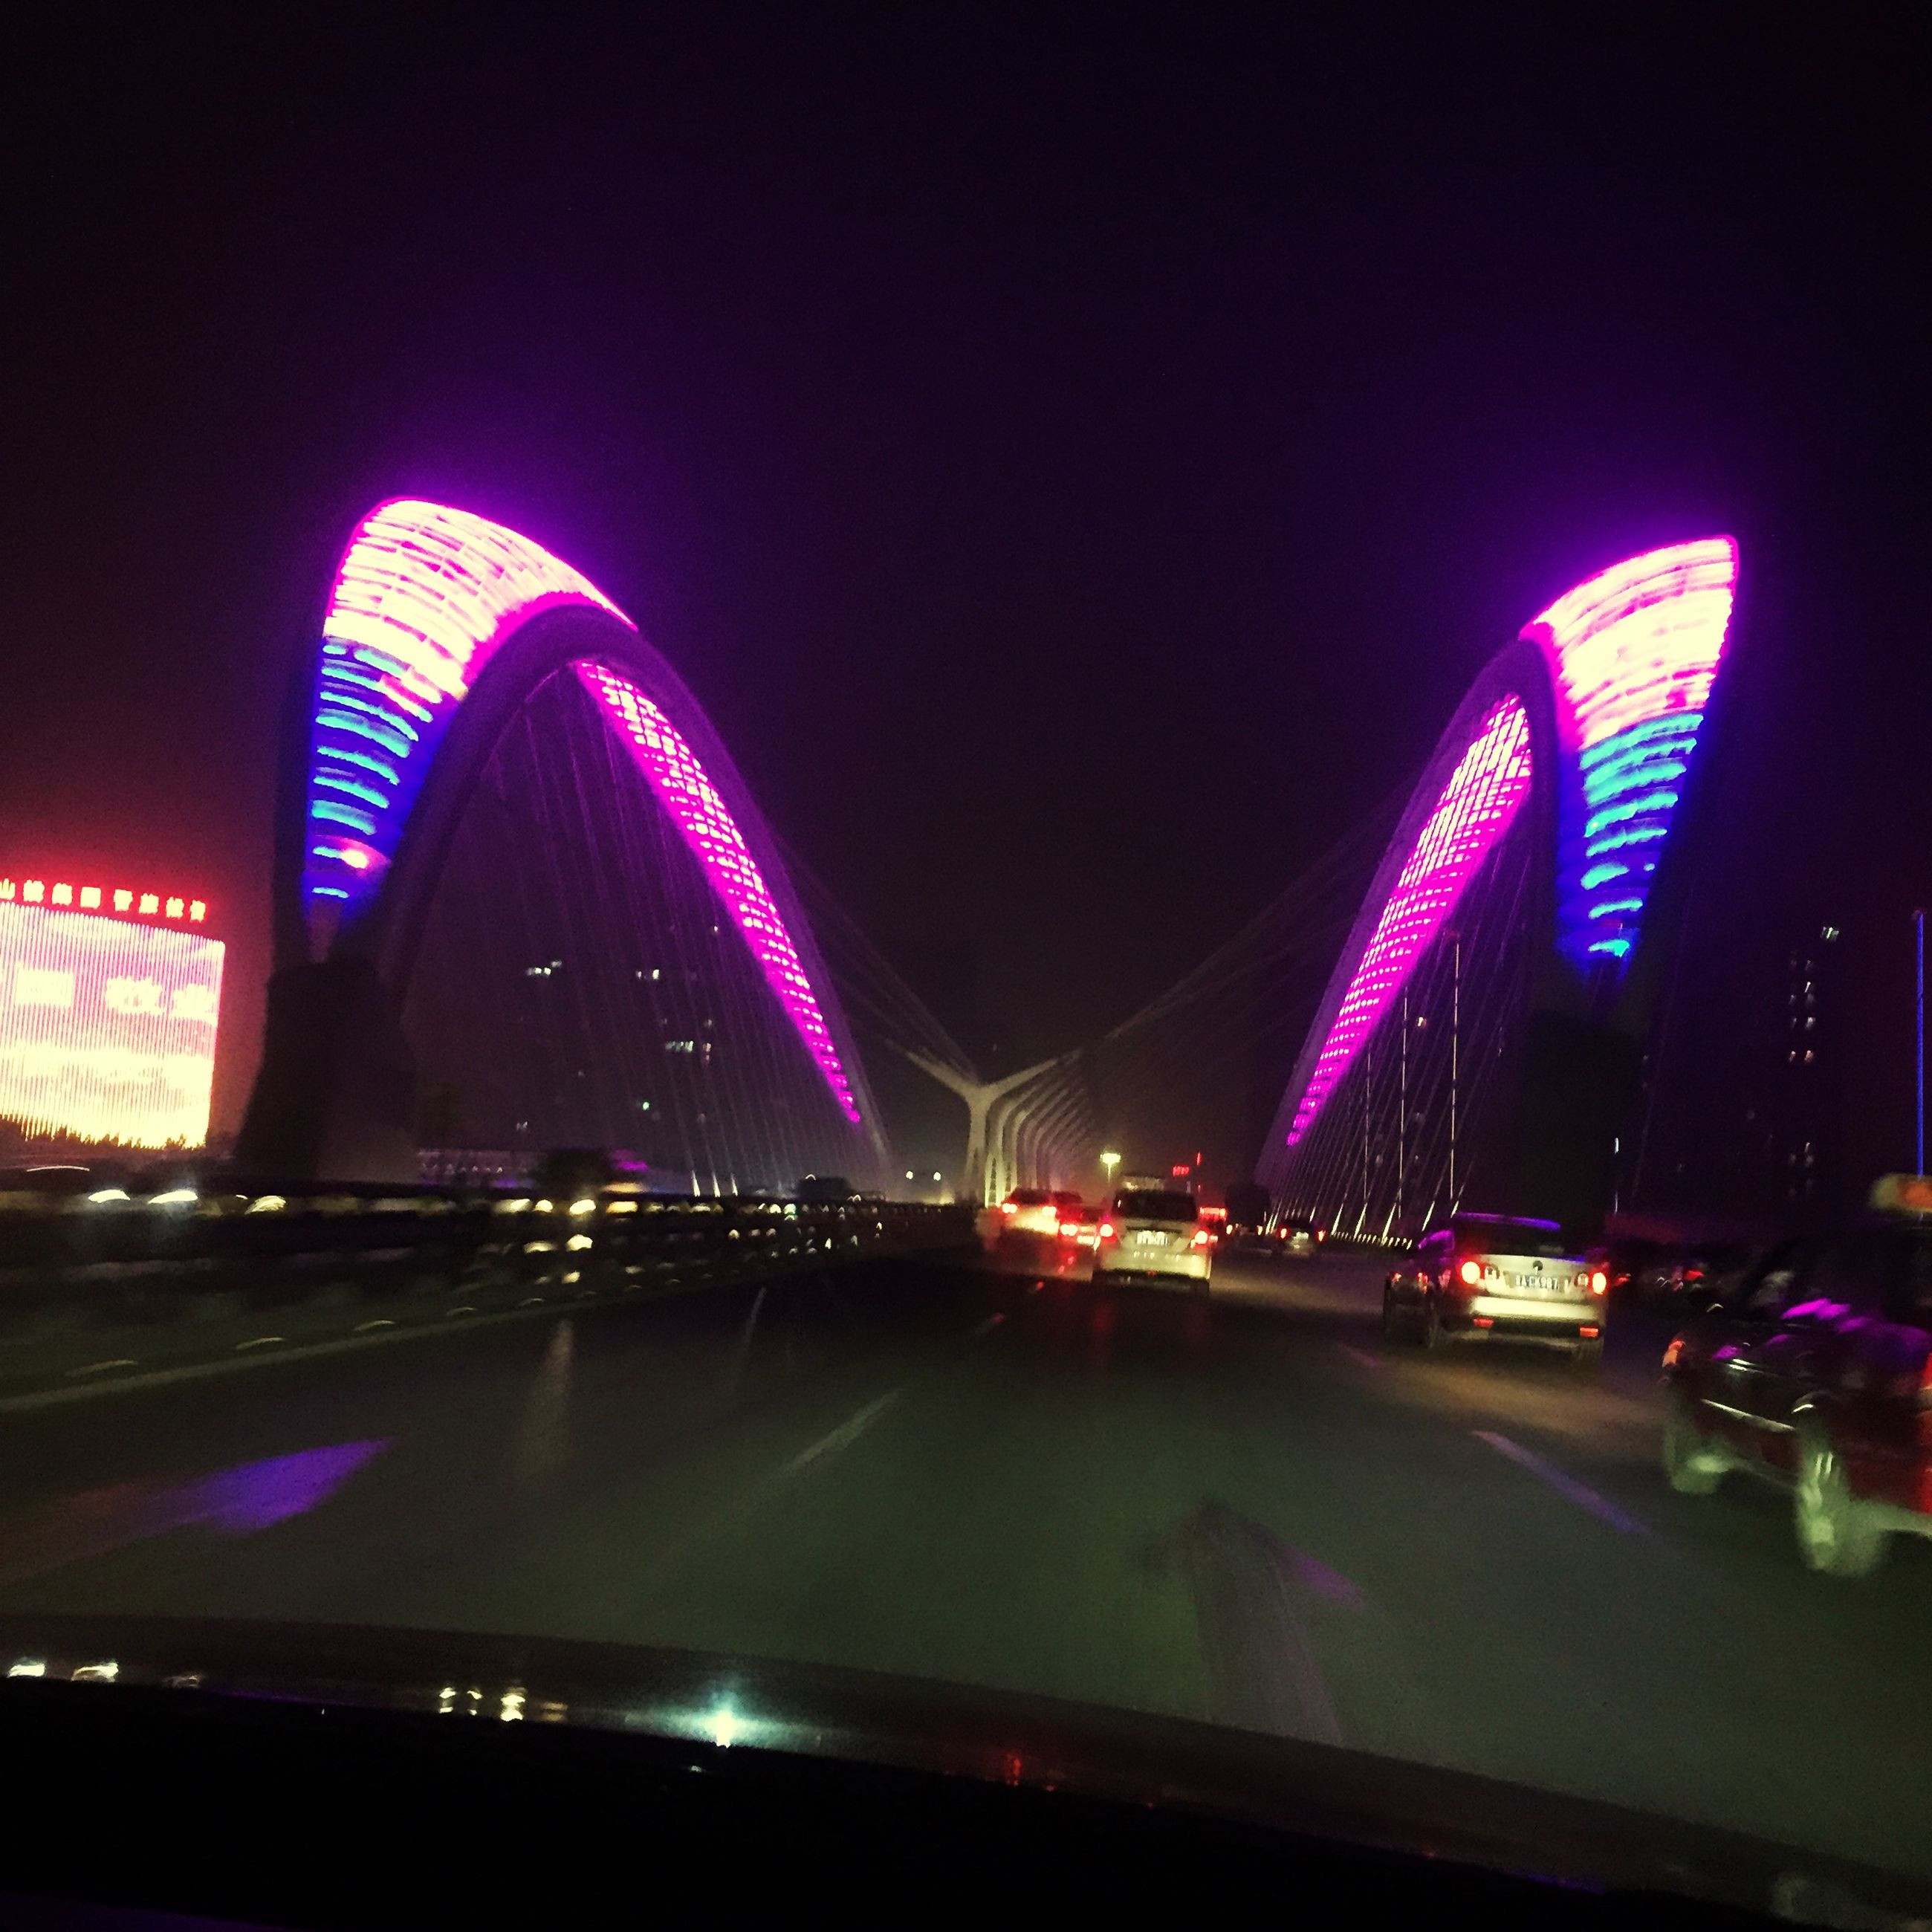 illuminated, night, architecture, built structure, transportation, bridge - man made structure, city, connection, light trail, long exposure, engineering, modern, speed, motion, travel destinations, road, building exterior, capital cities, travel, famous place